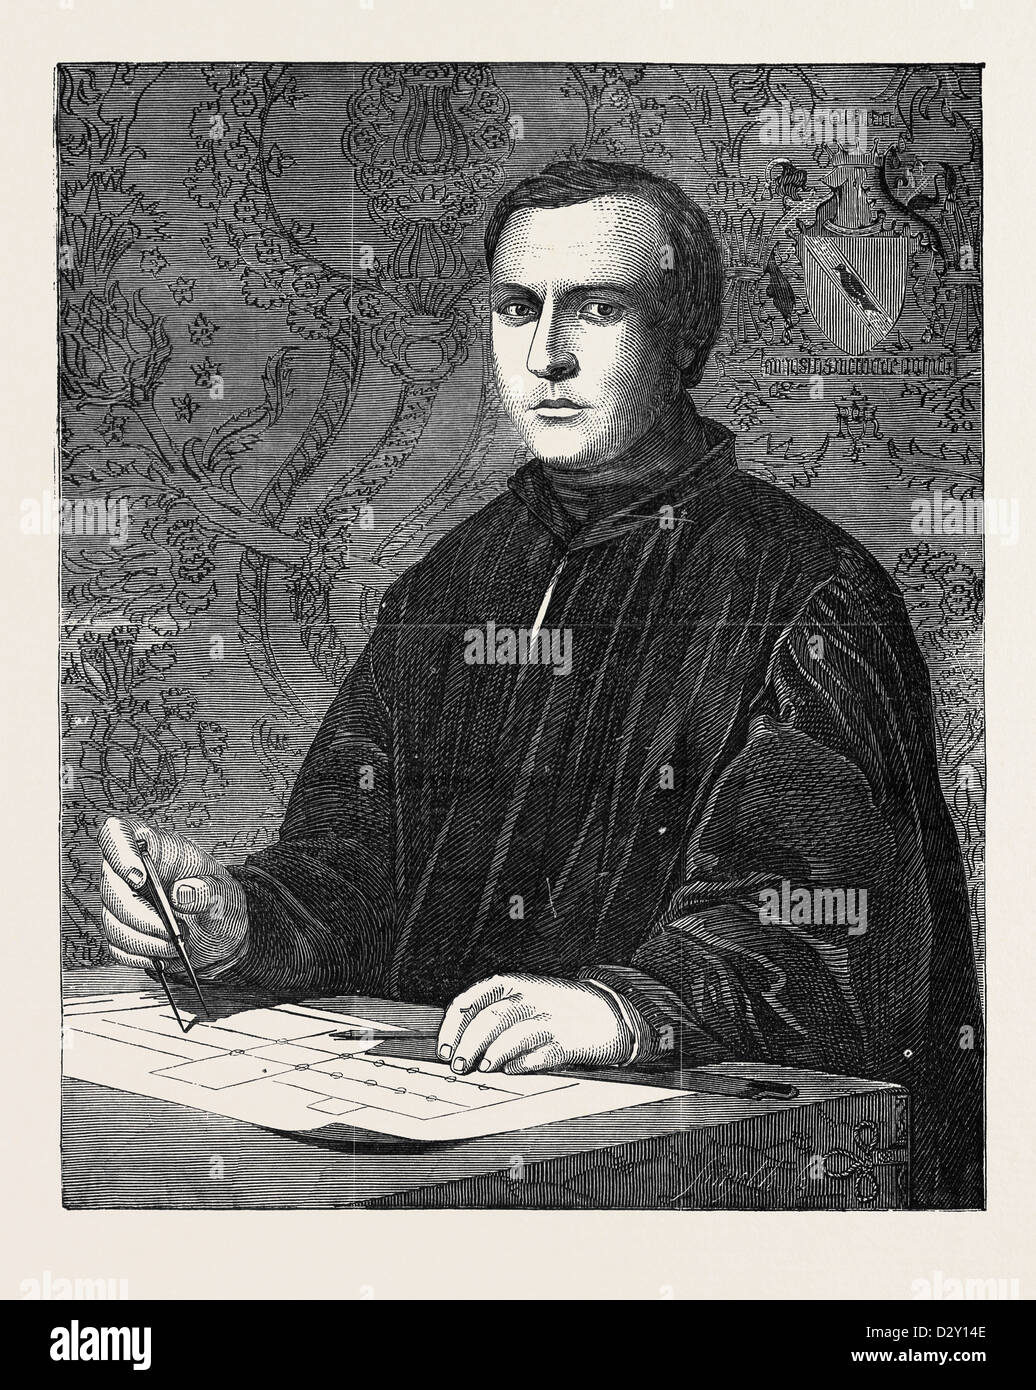 THE LATE A. WELBY PUGIN, ARCHITECT - Stock Image